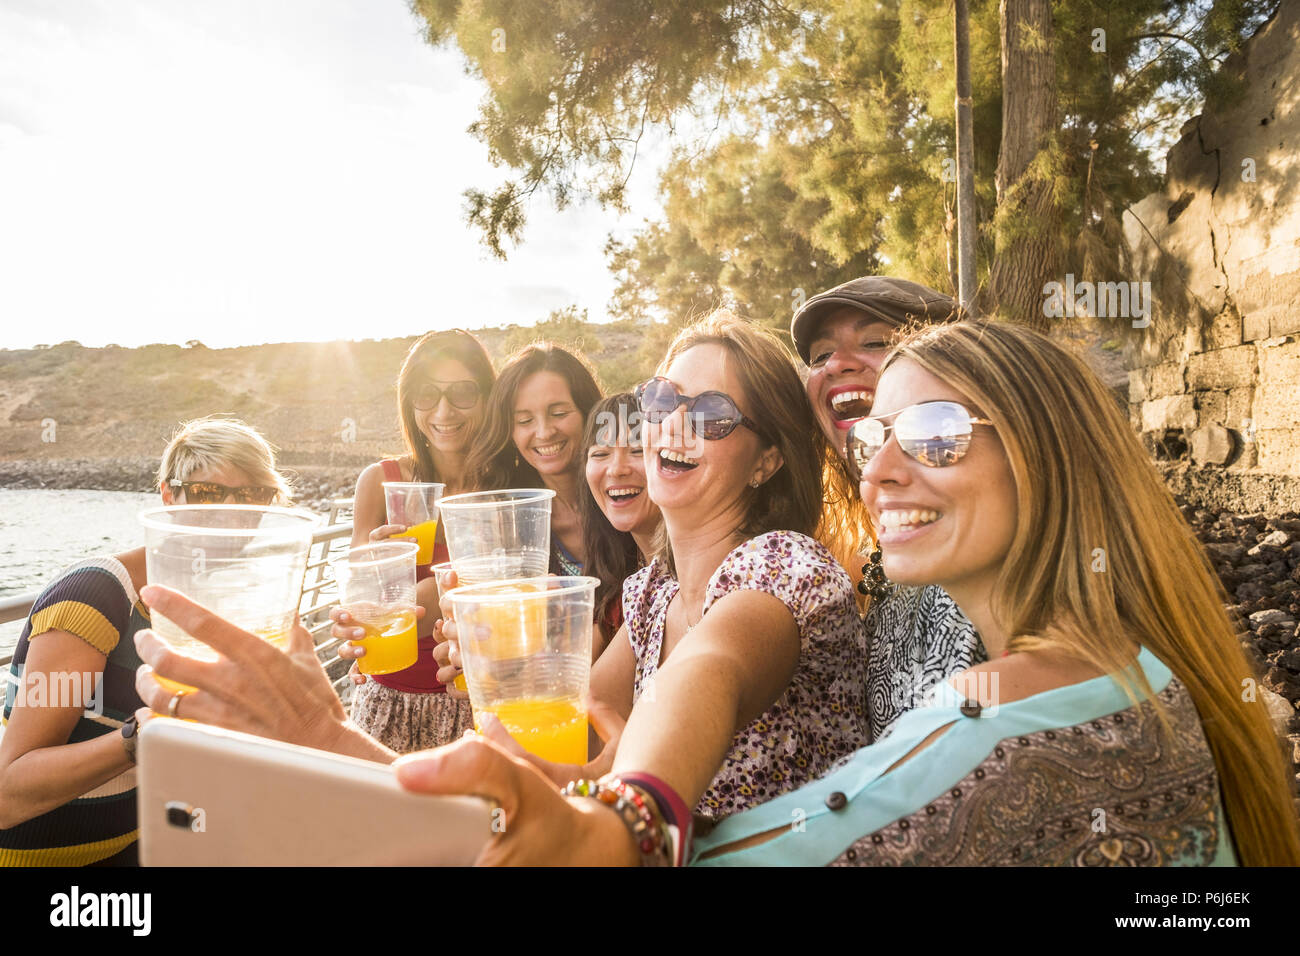 group of young beautiful caucasian woman taking selfie in vacation leisure activity outdoor near the beach and the ocean. sunset time with backlight a - Stock Image